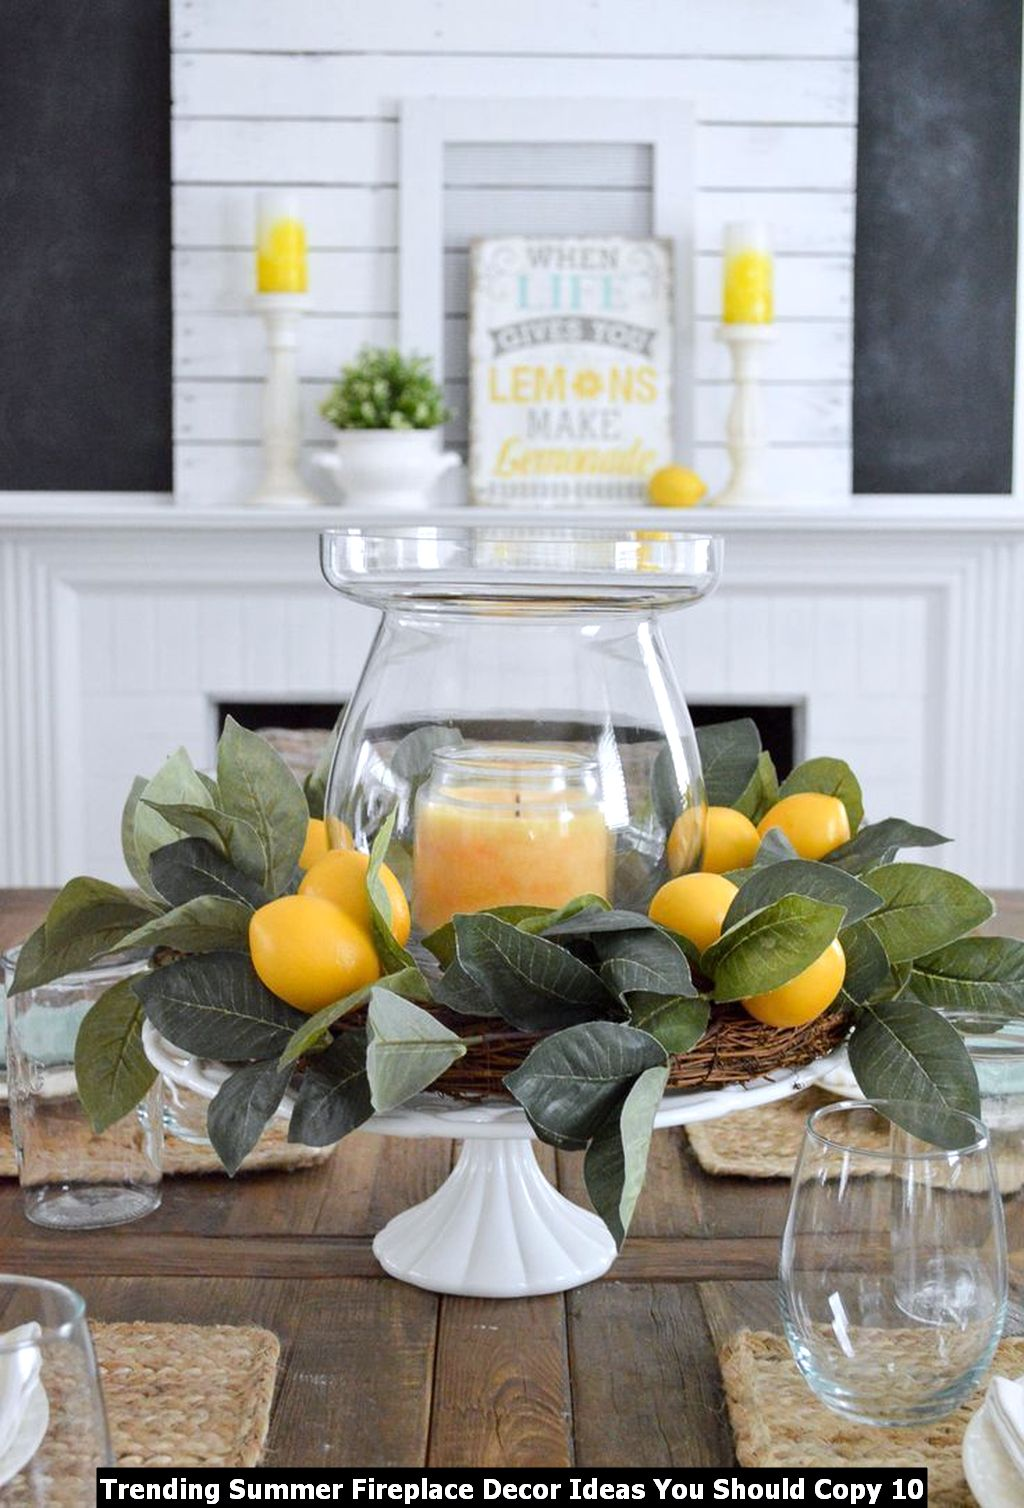 Trending Summer Fireplace Decor Ideas You Should Copy 10